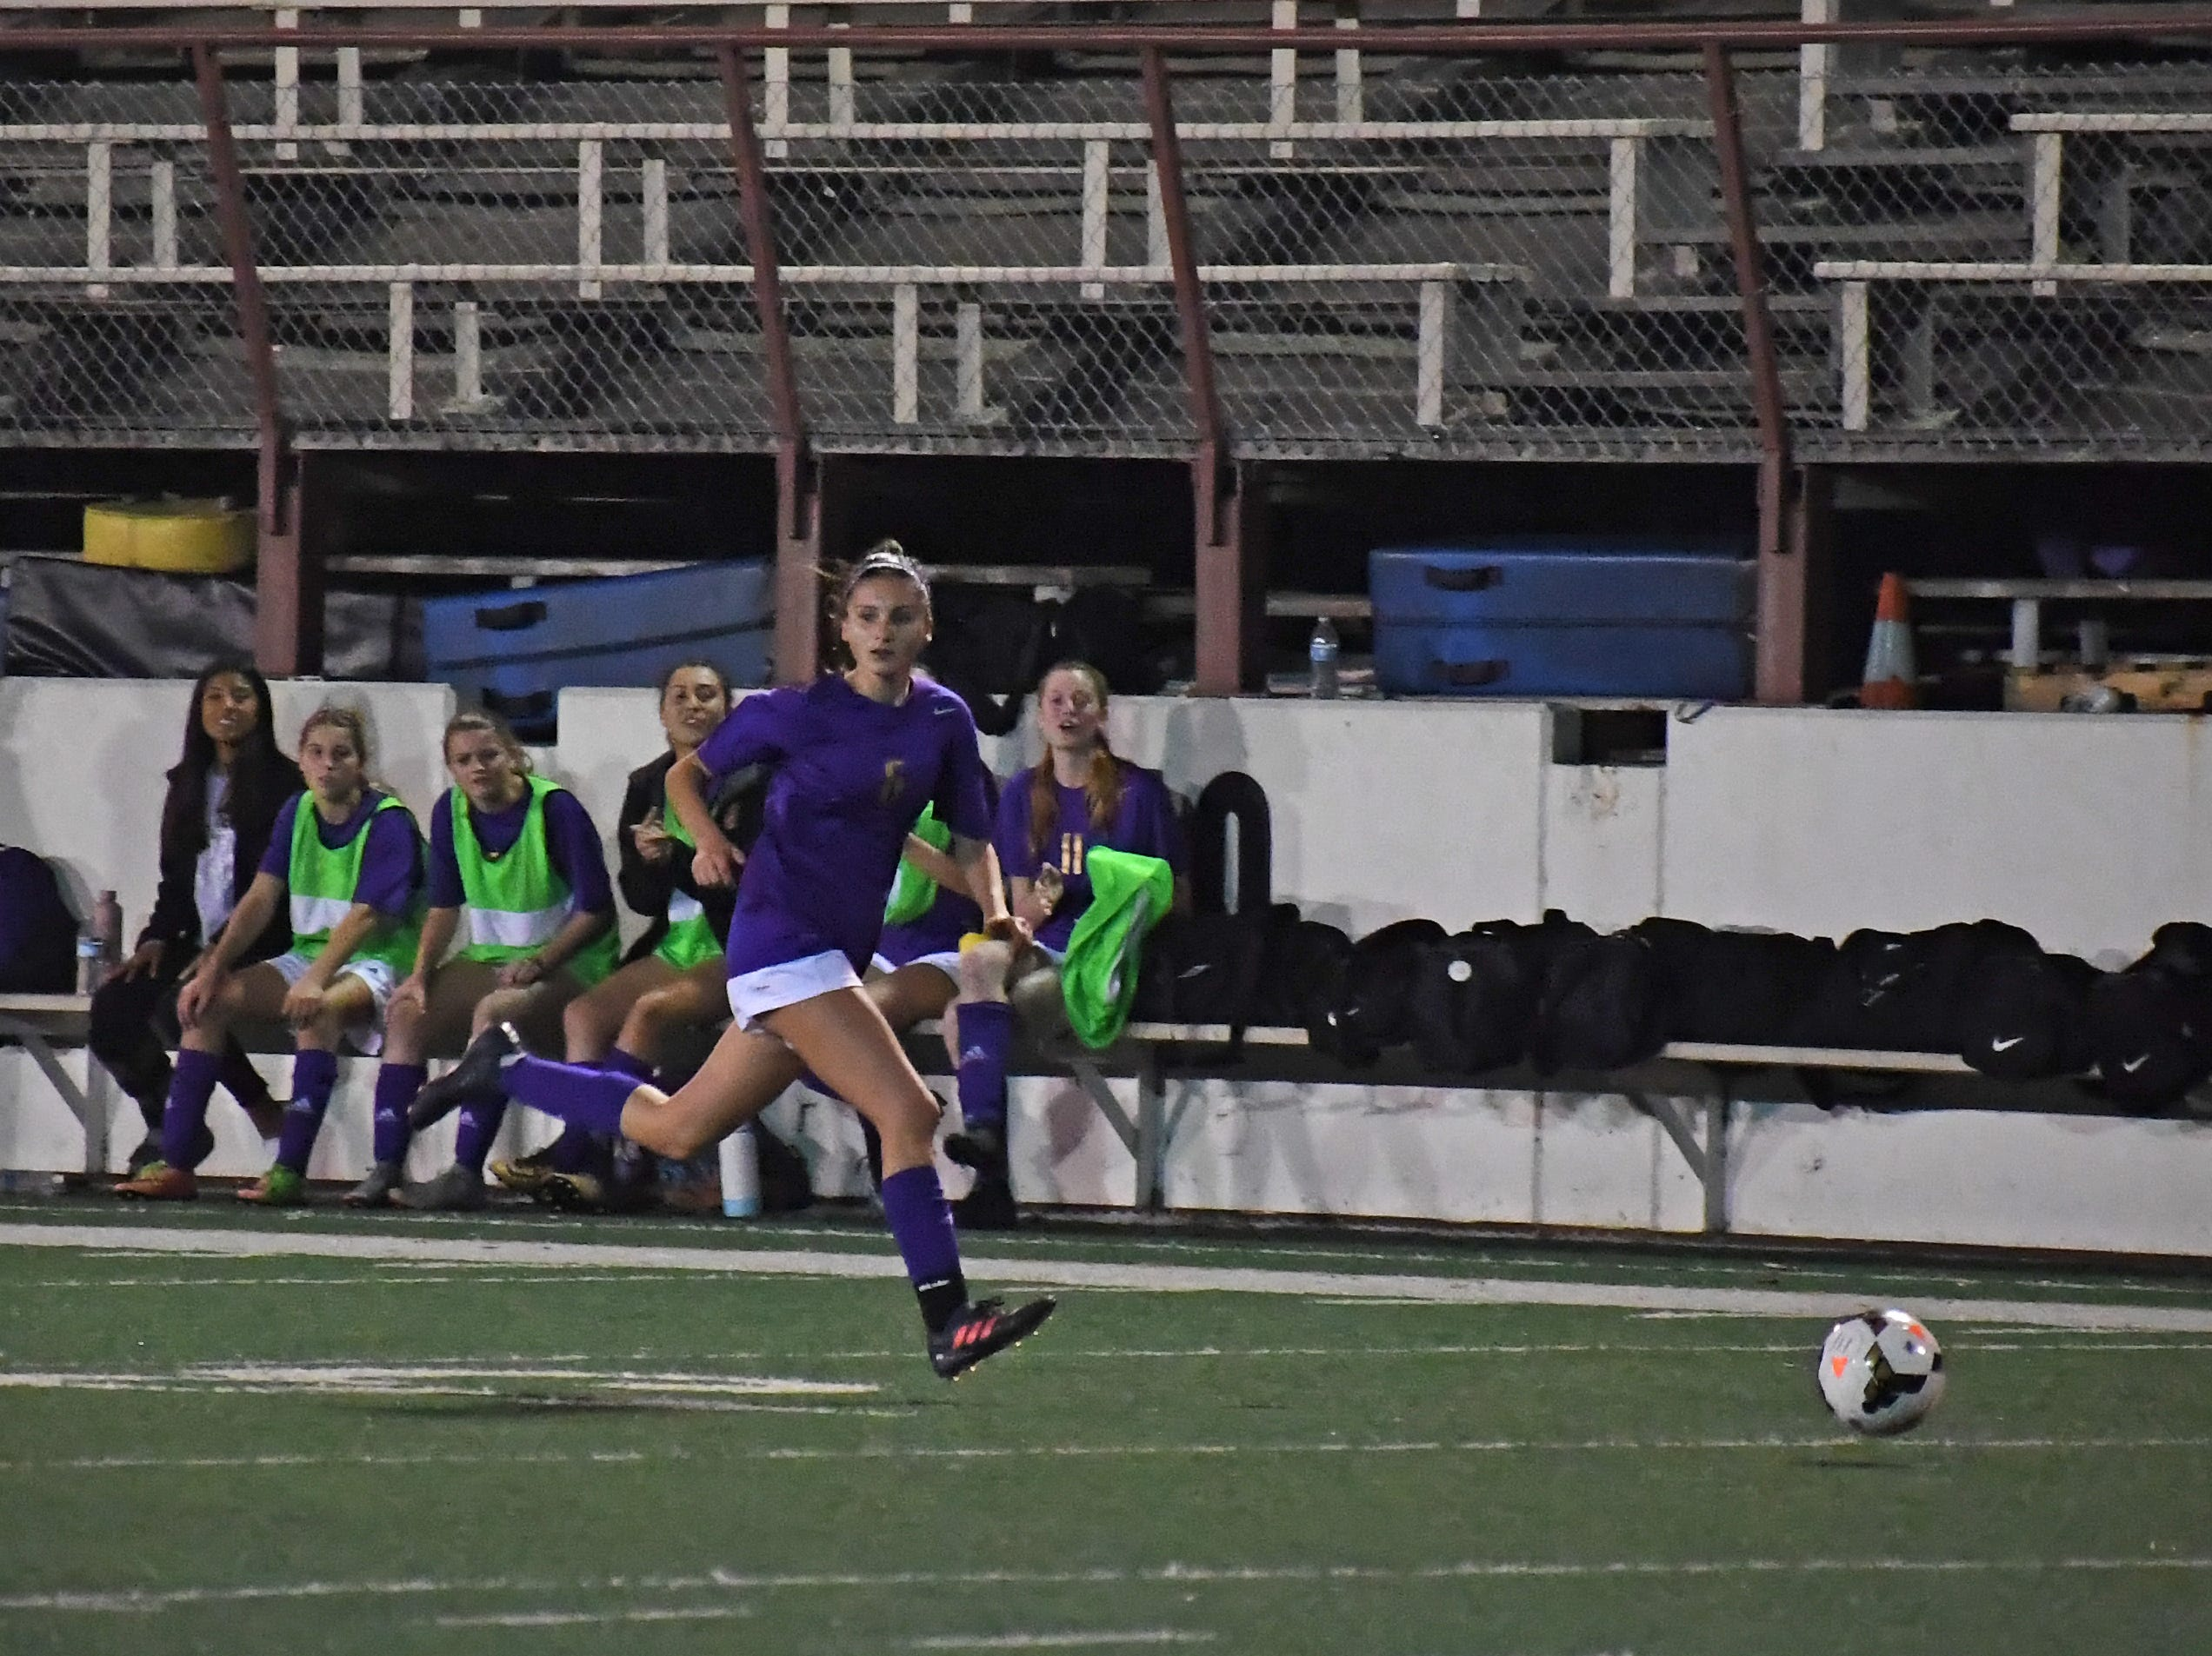 Junior Vivianne Mendoza (6) looks to pass while sprinting downfield.